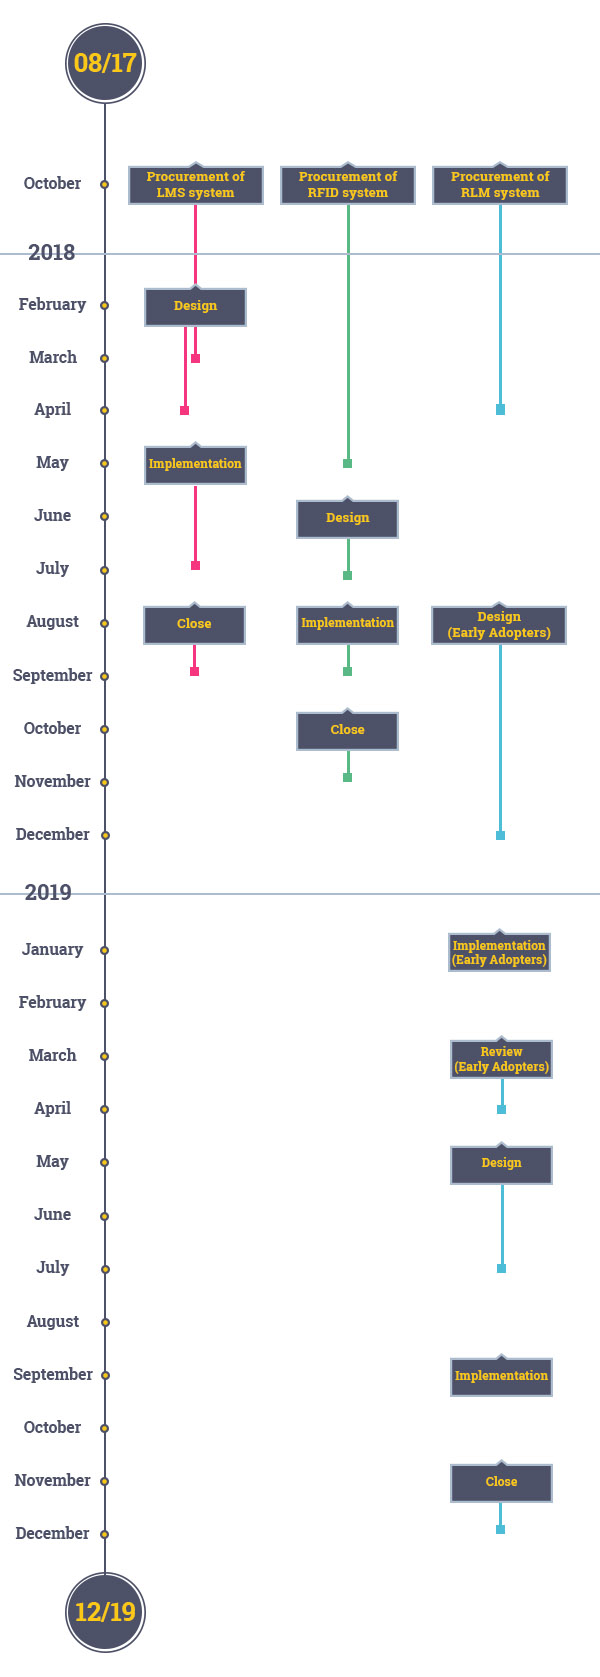 Timeline of activity and milestones for the Digital Library Platform Project